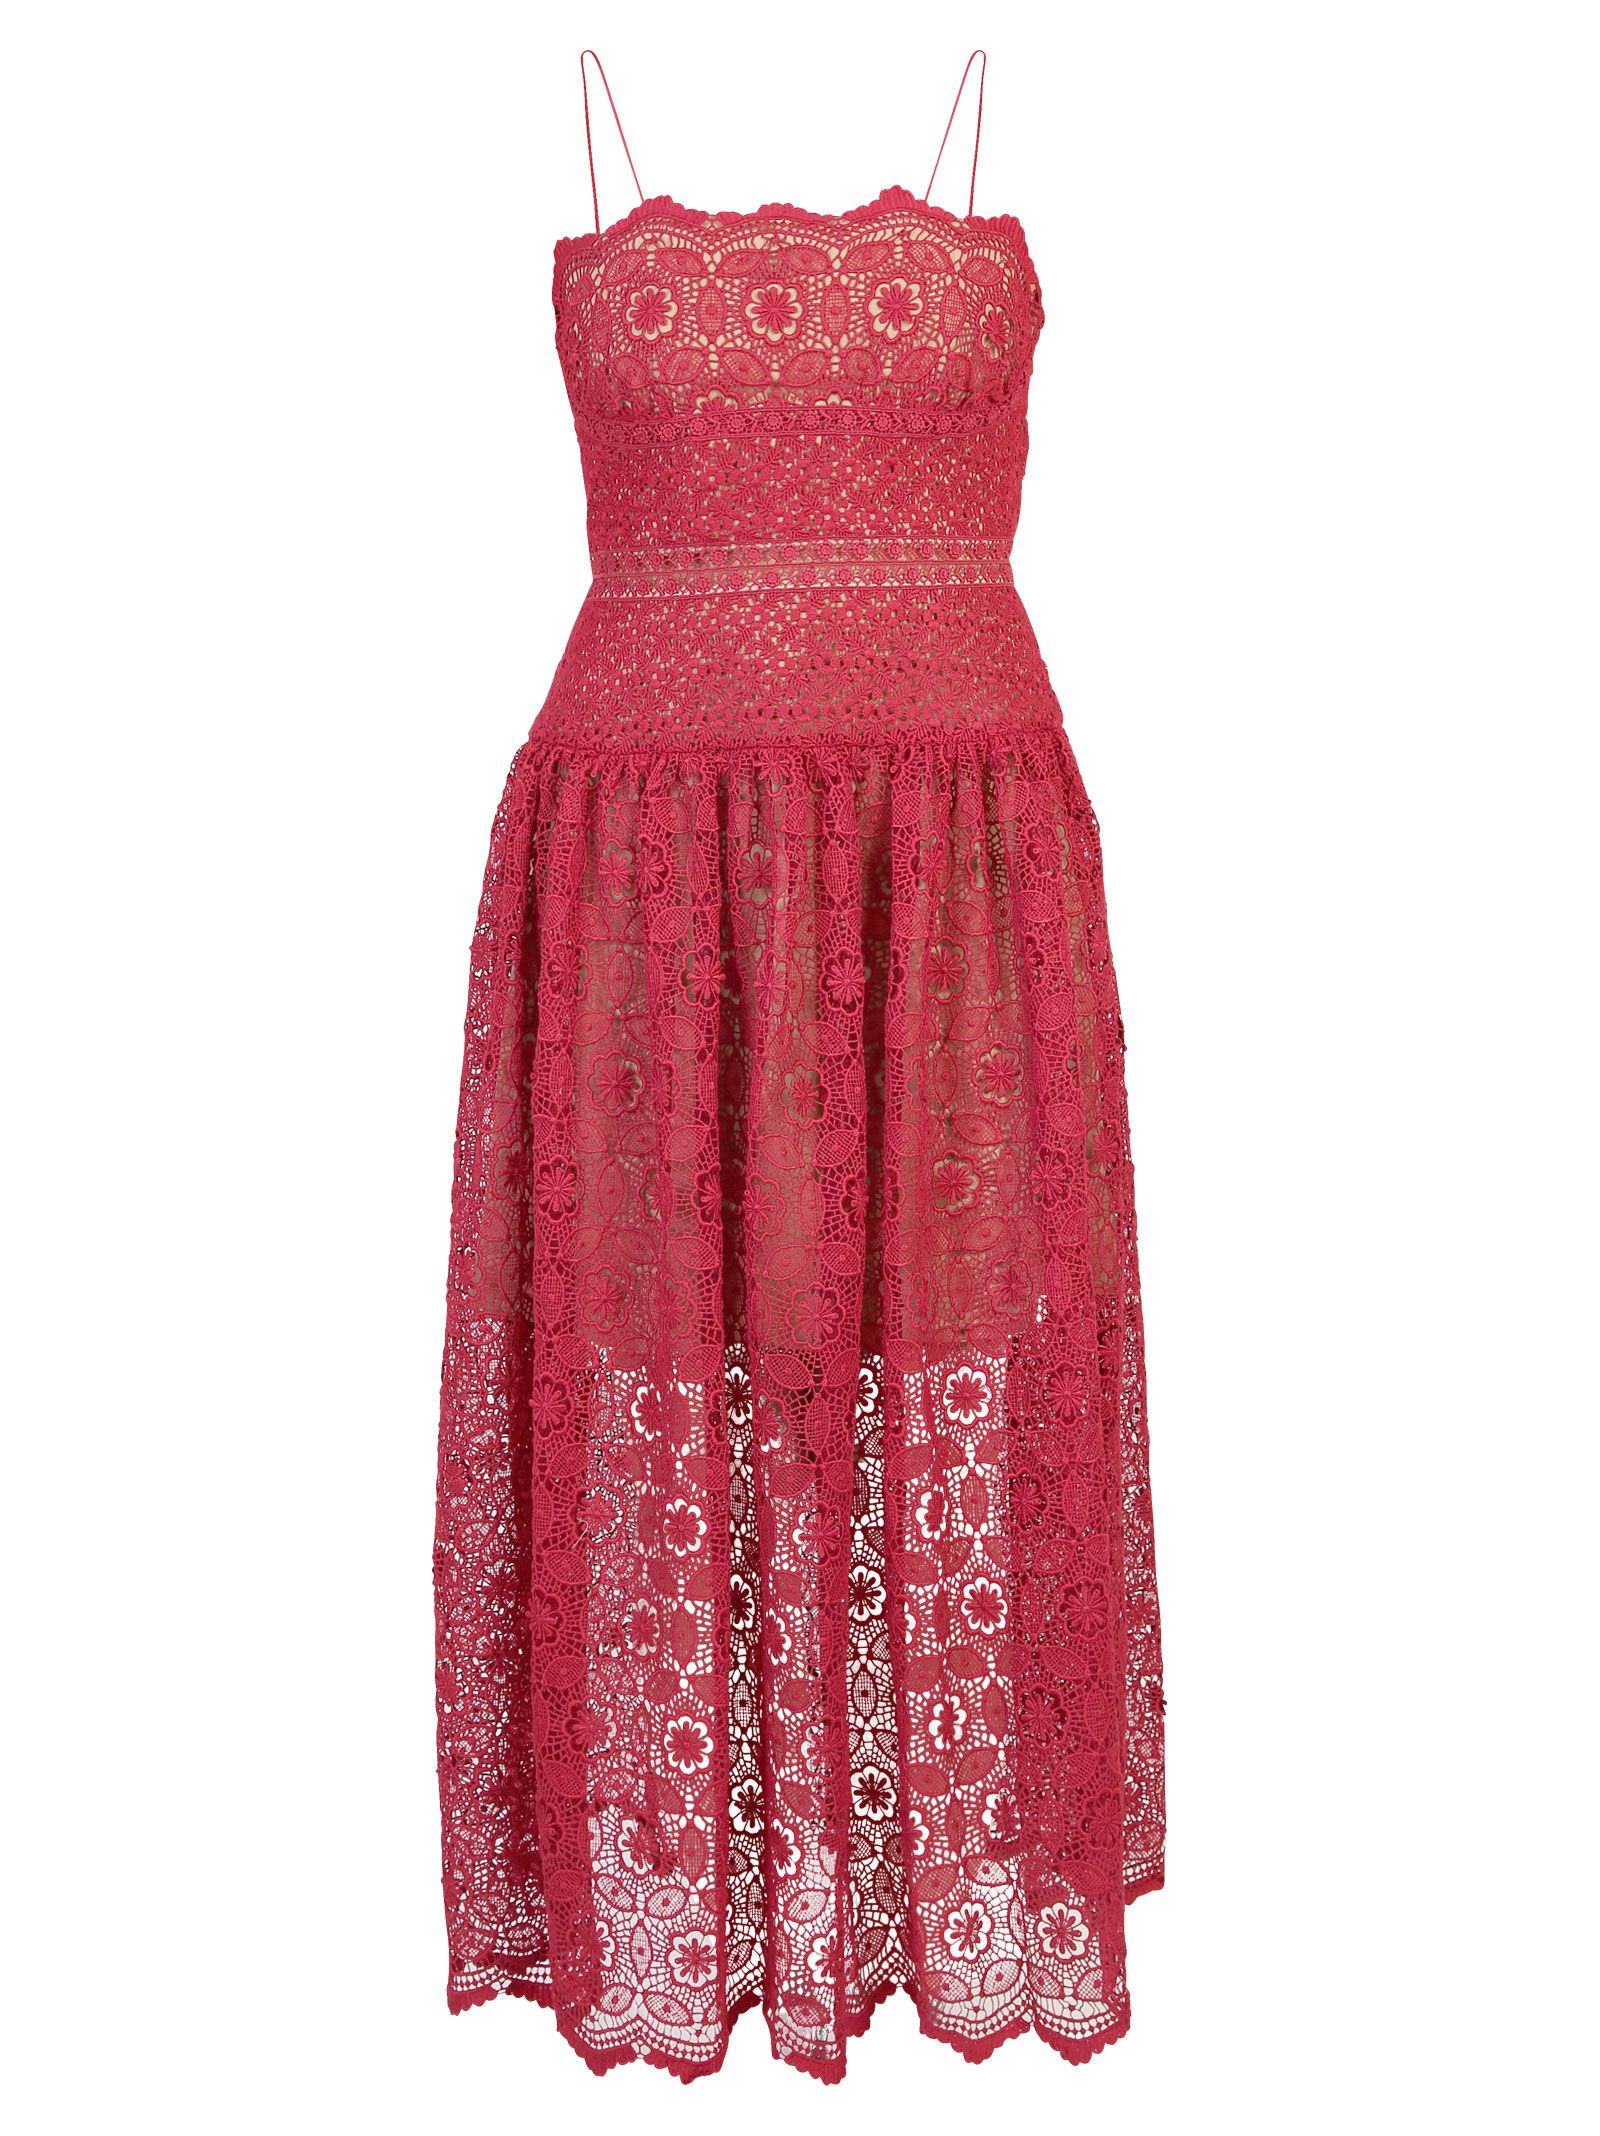 BORDEAUX LACE DRESS